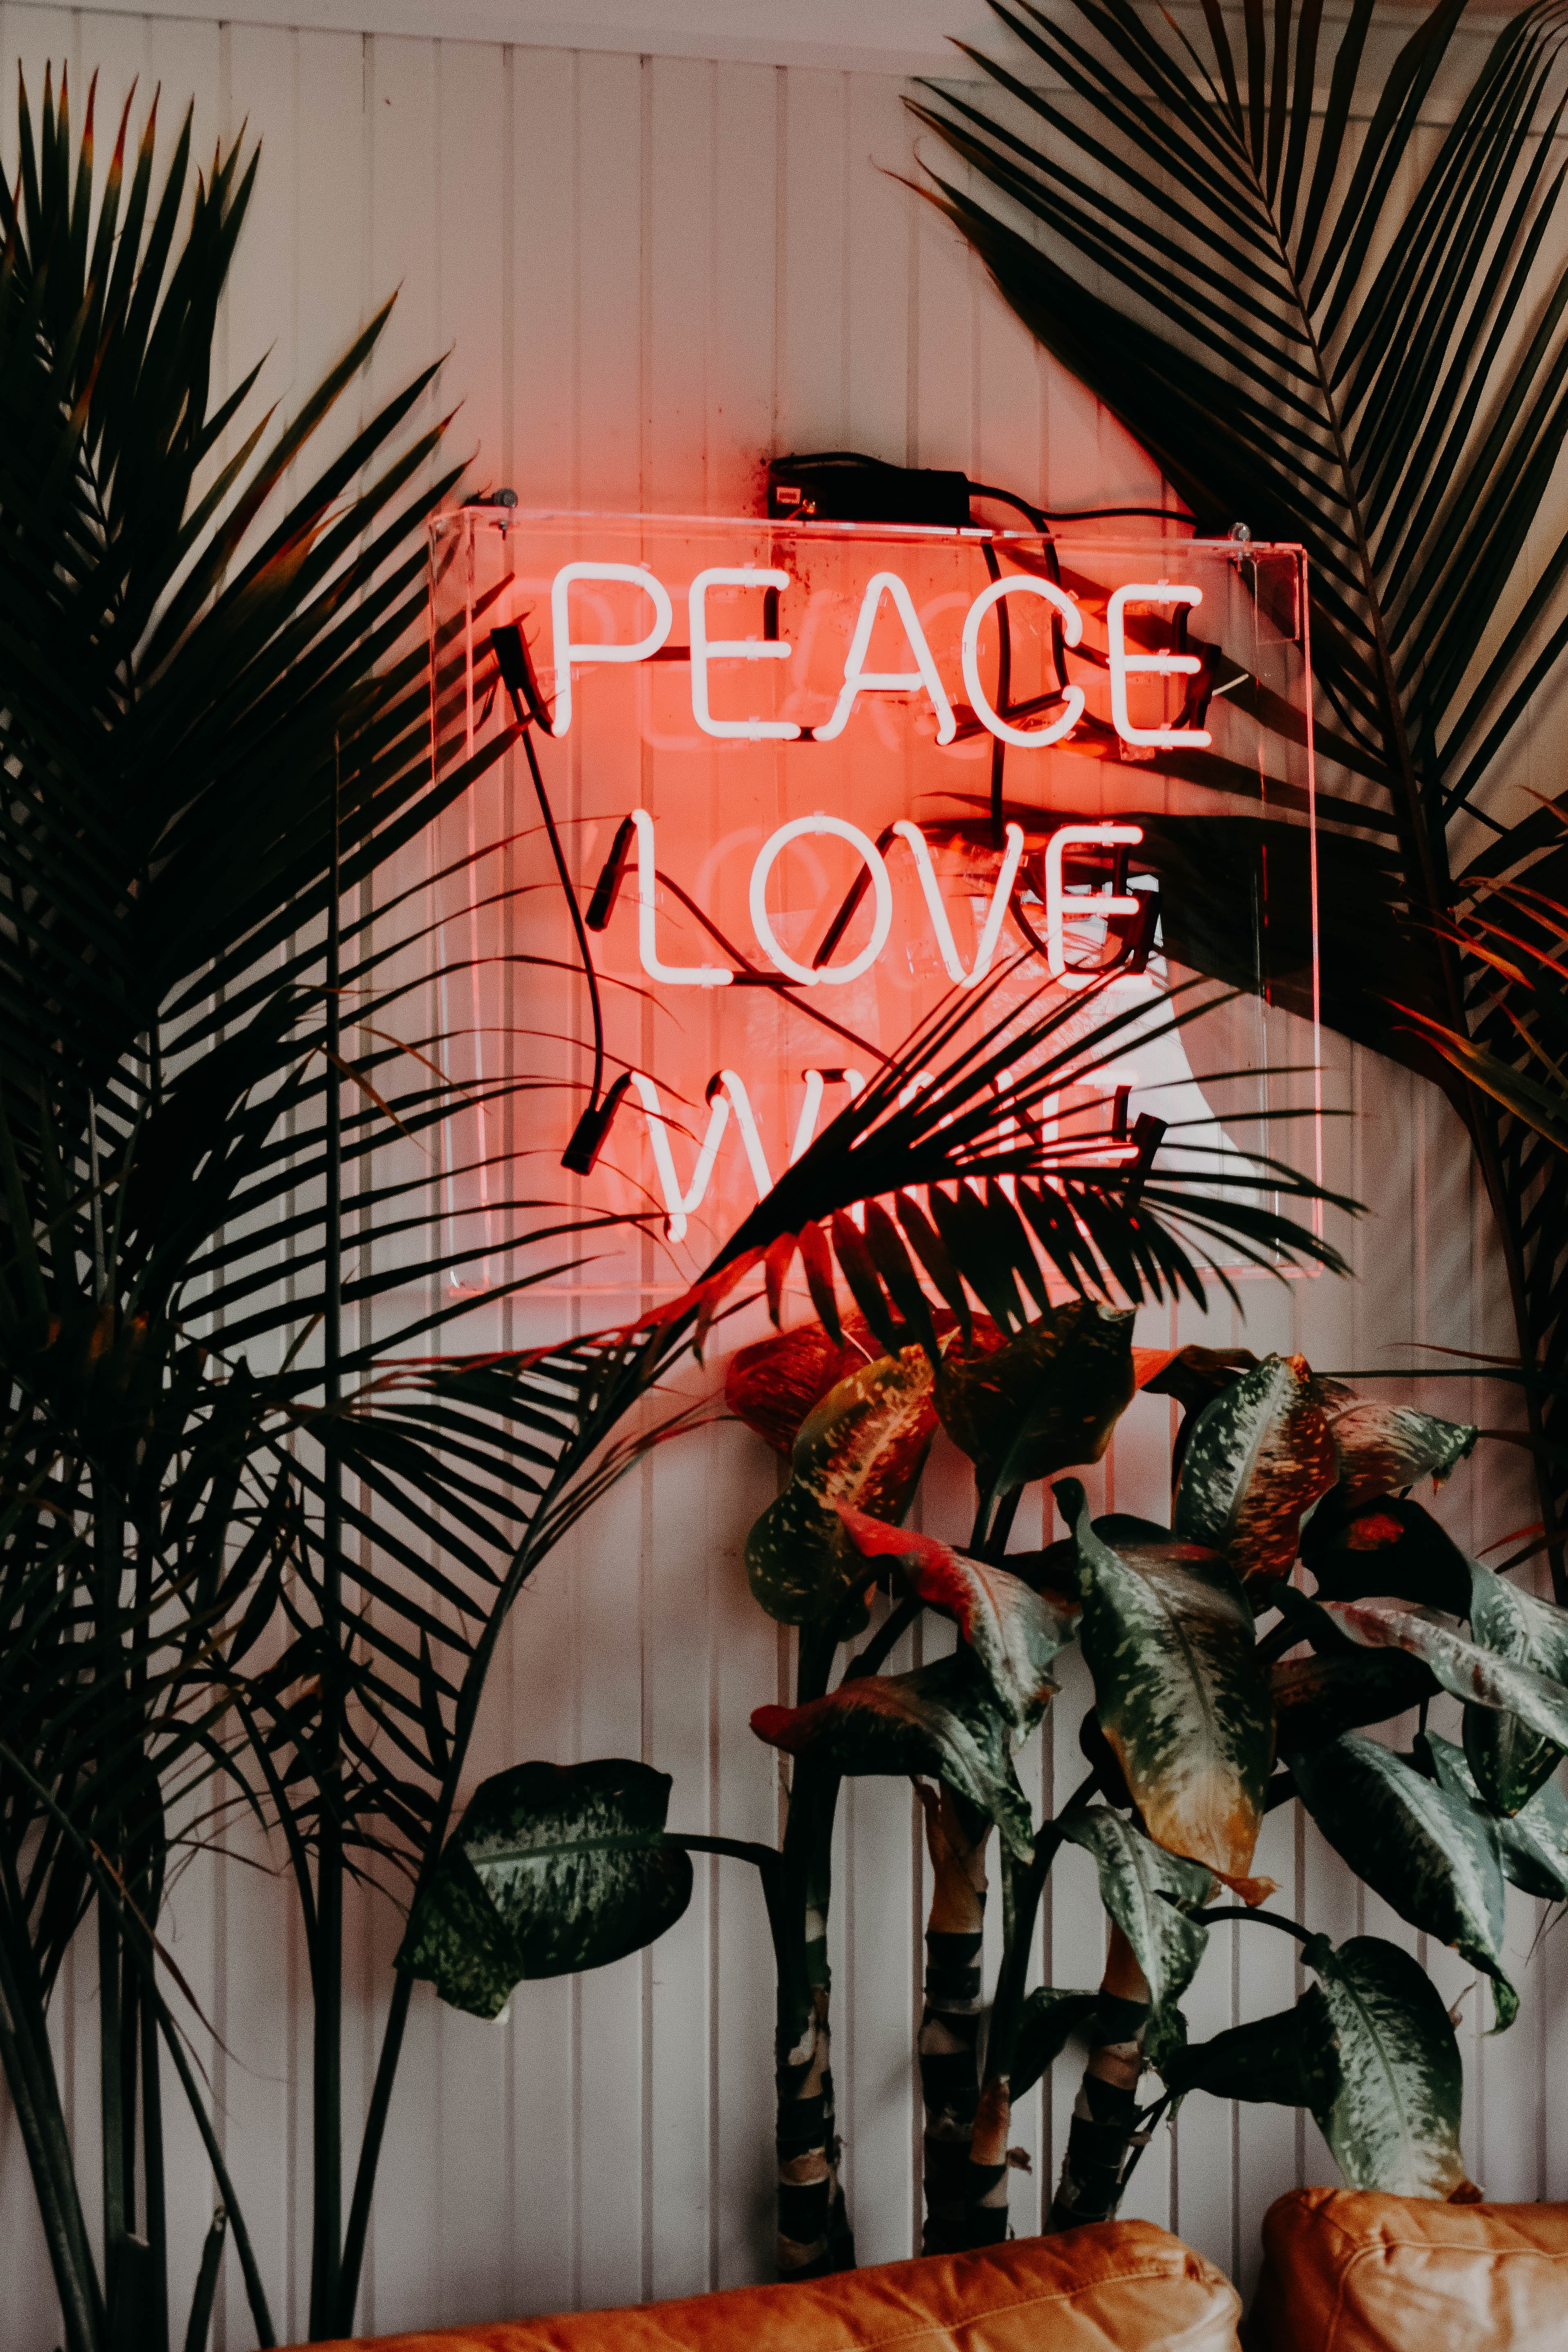 peace love neon signage near green leaf plants